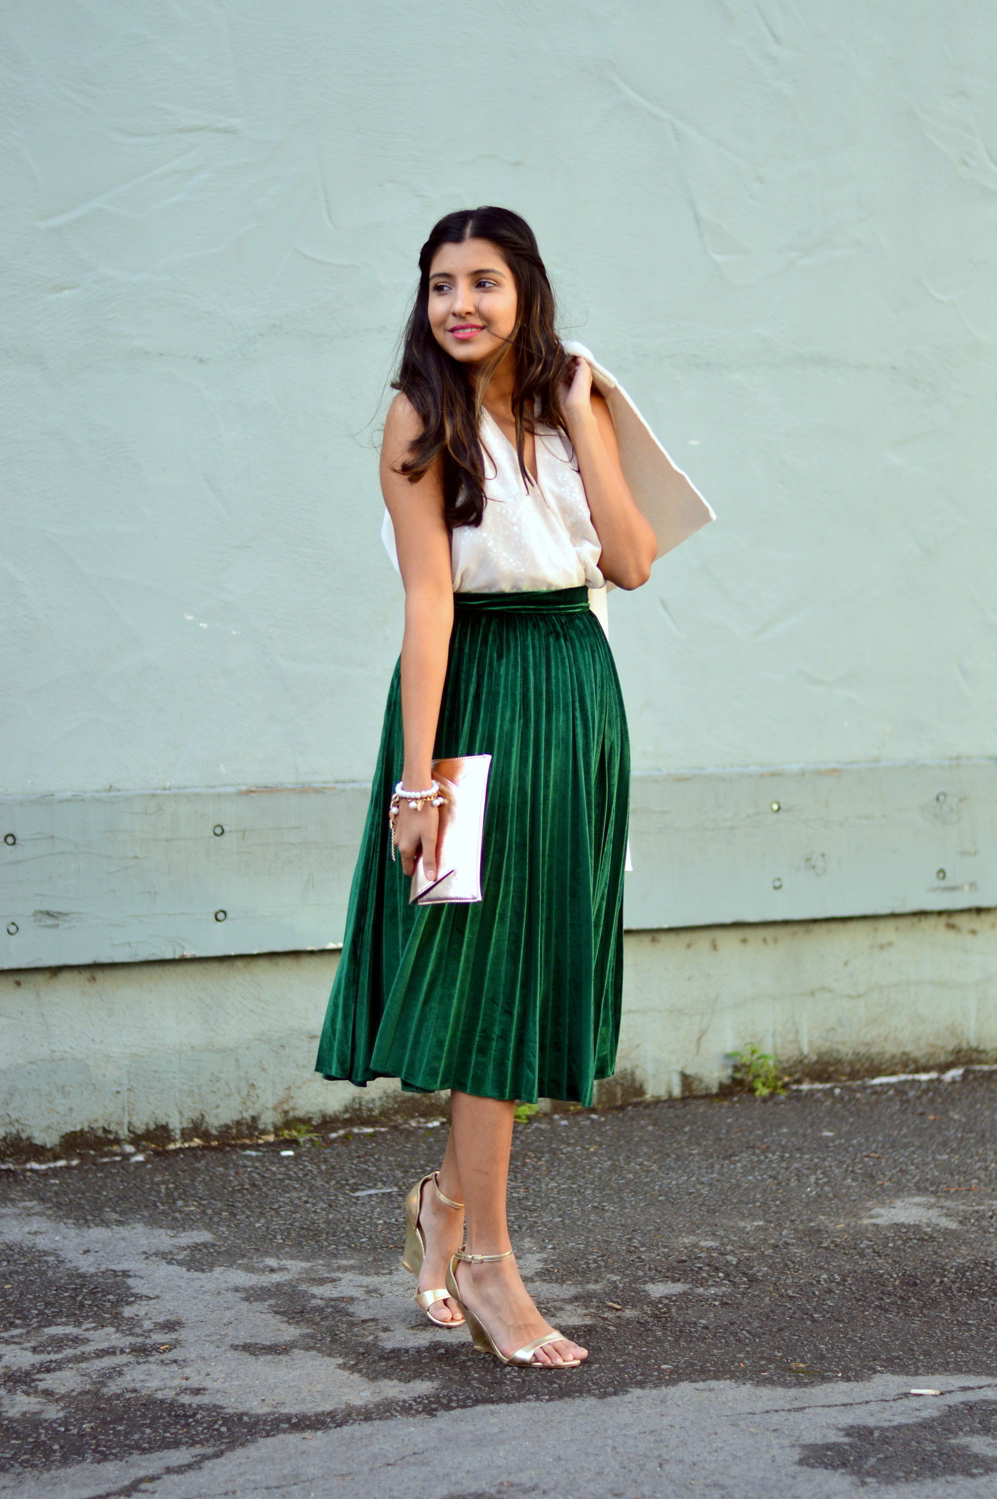 velvet-pleats-midi-skirt-daytime-sequins-party-outfit-blogger-winter-style 6